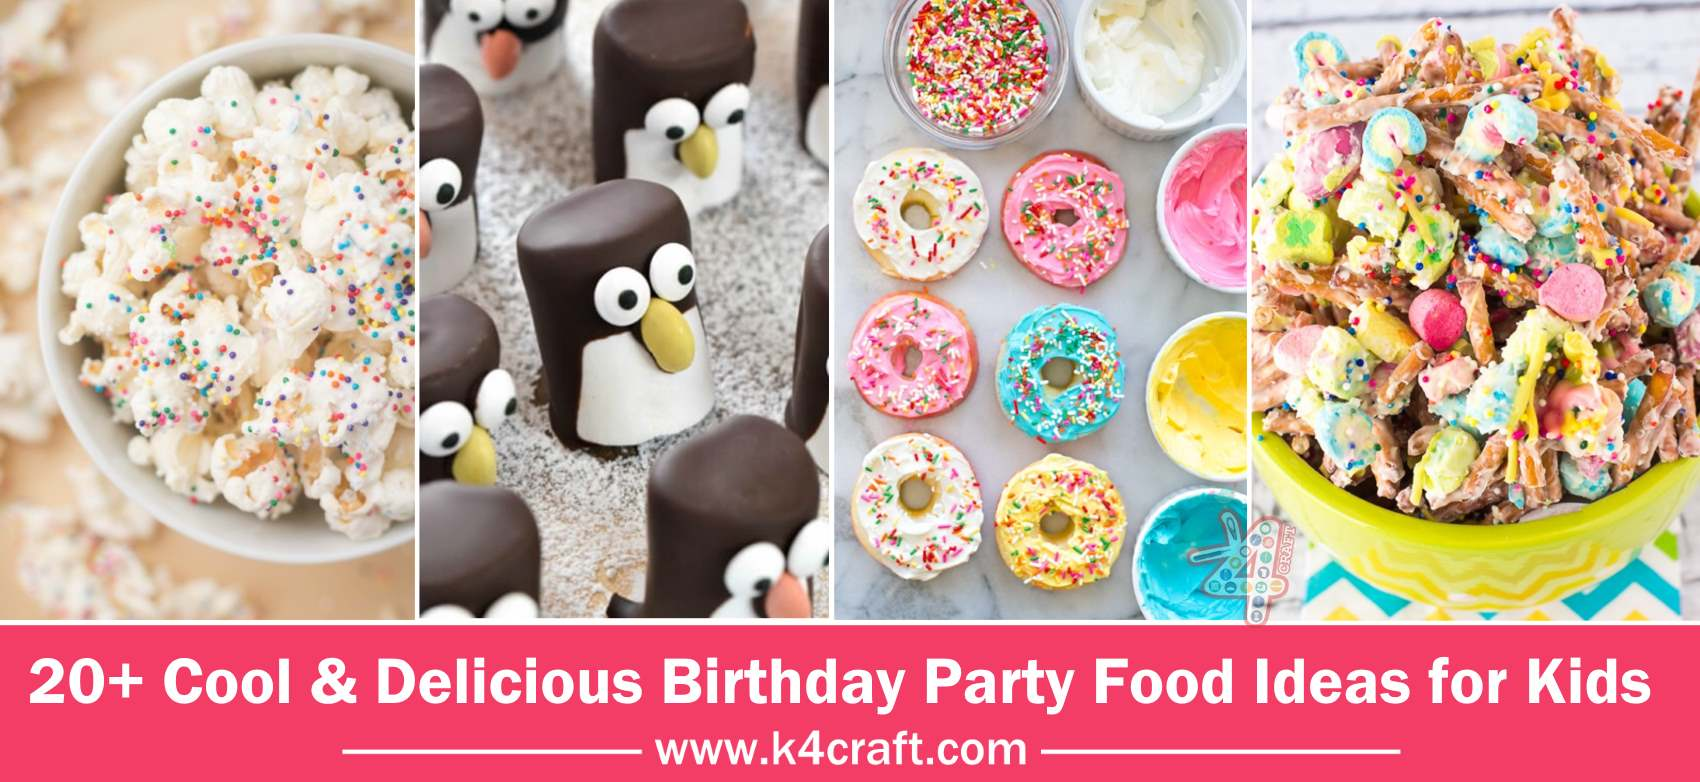 Cool Delicious Birthday Party Food Ideas For Kids K4 Craft